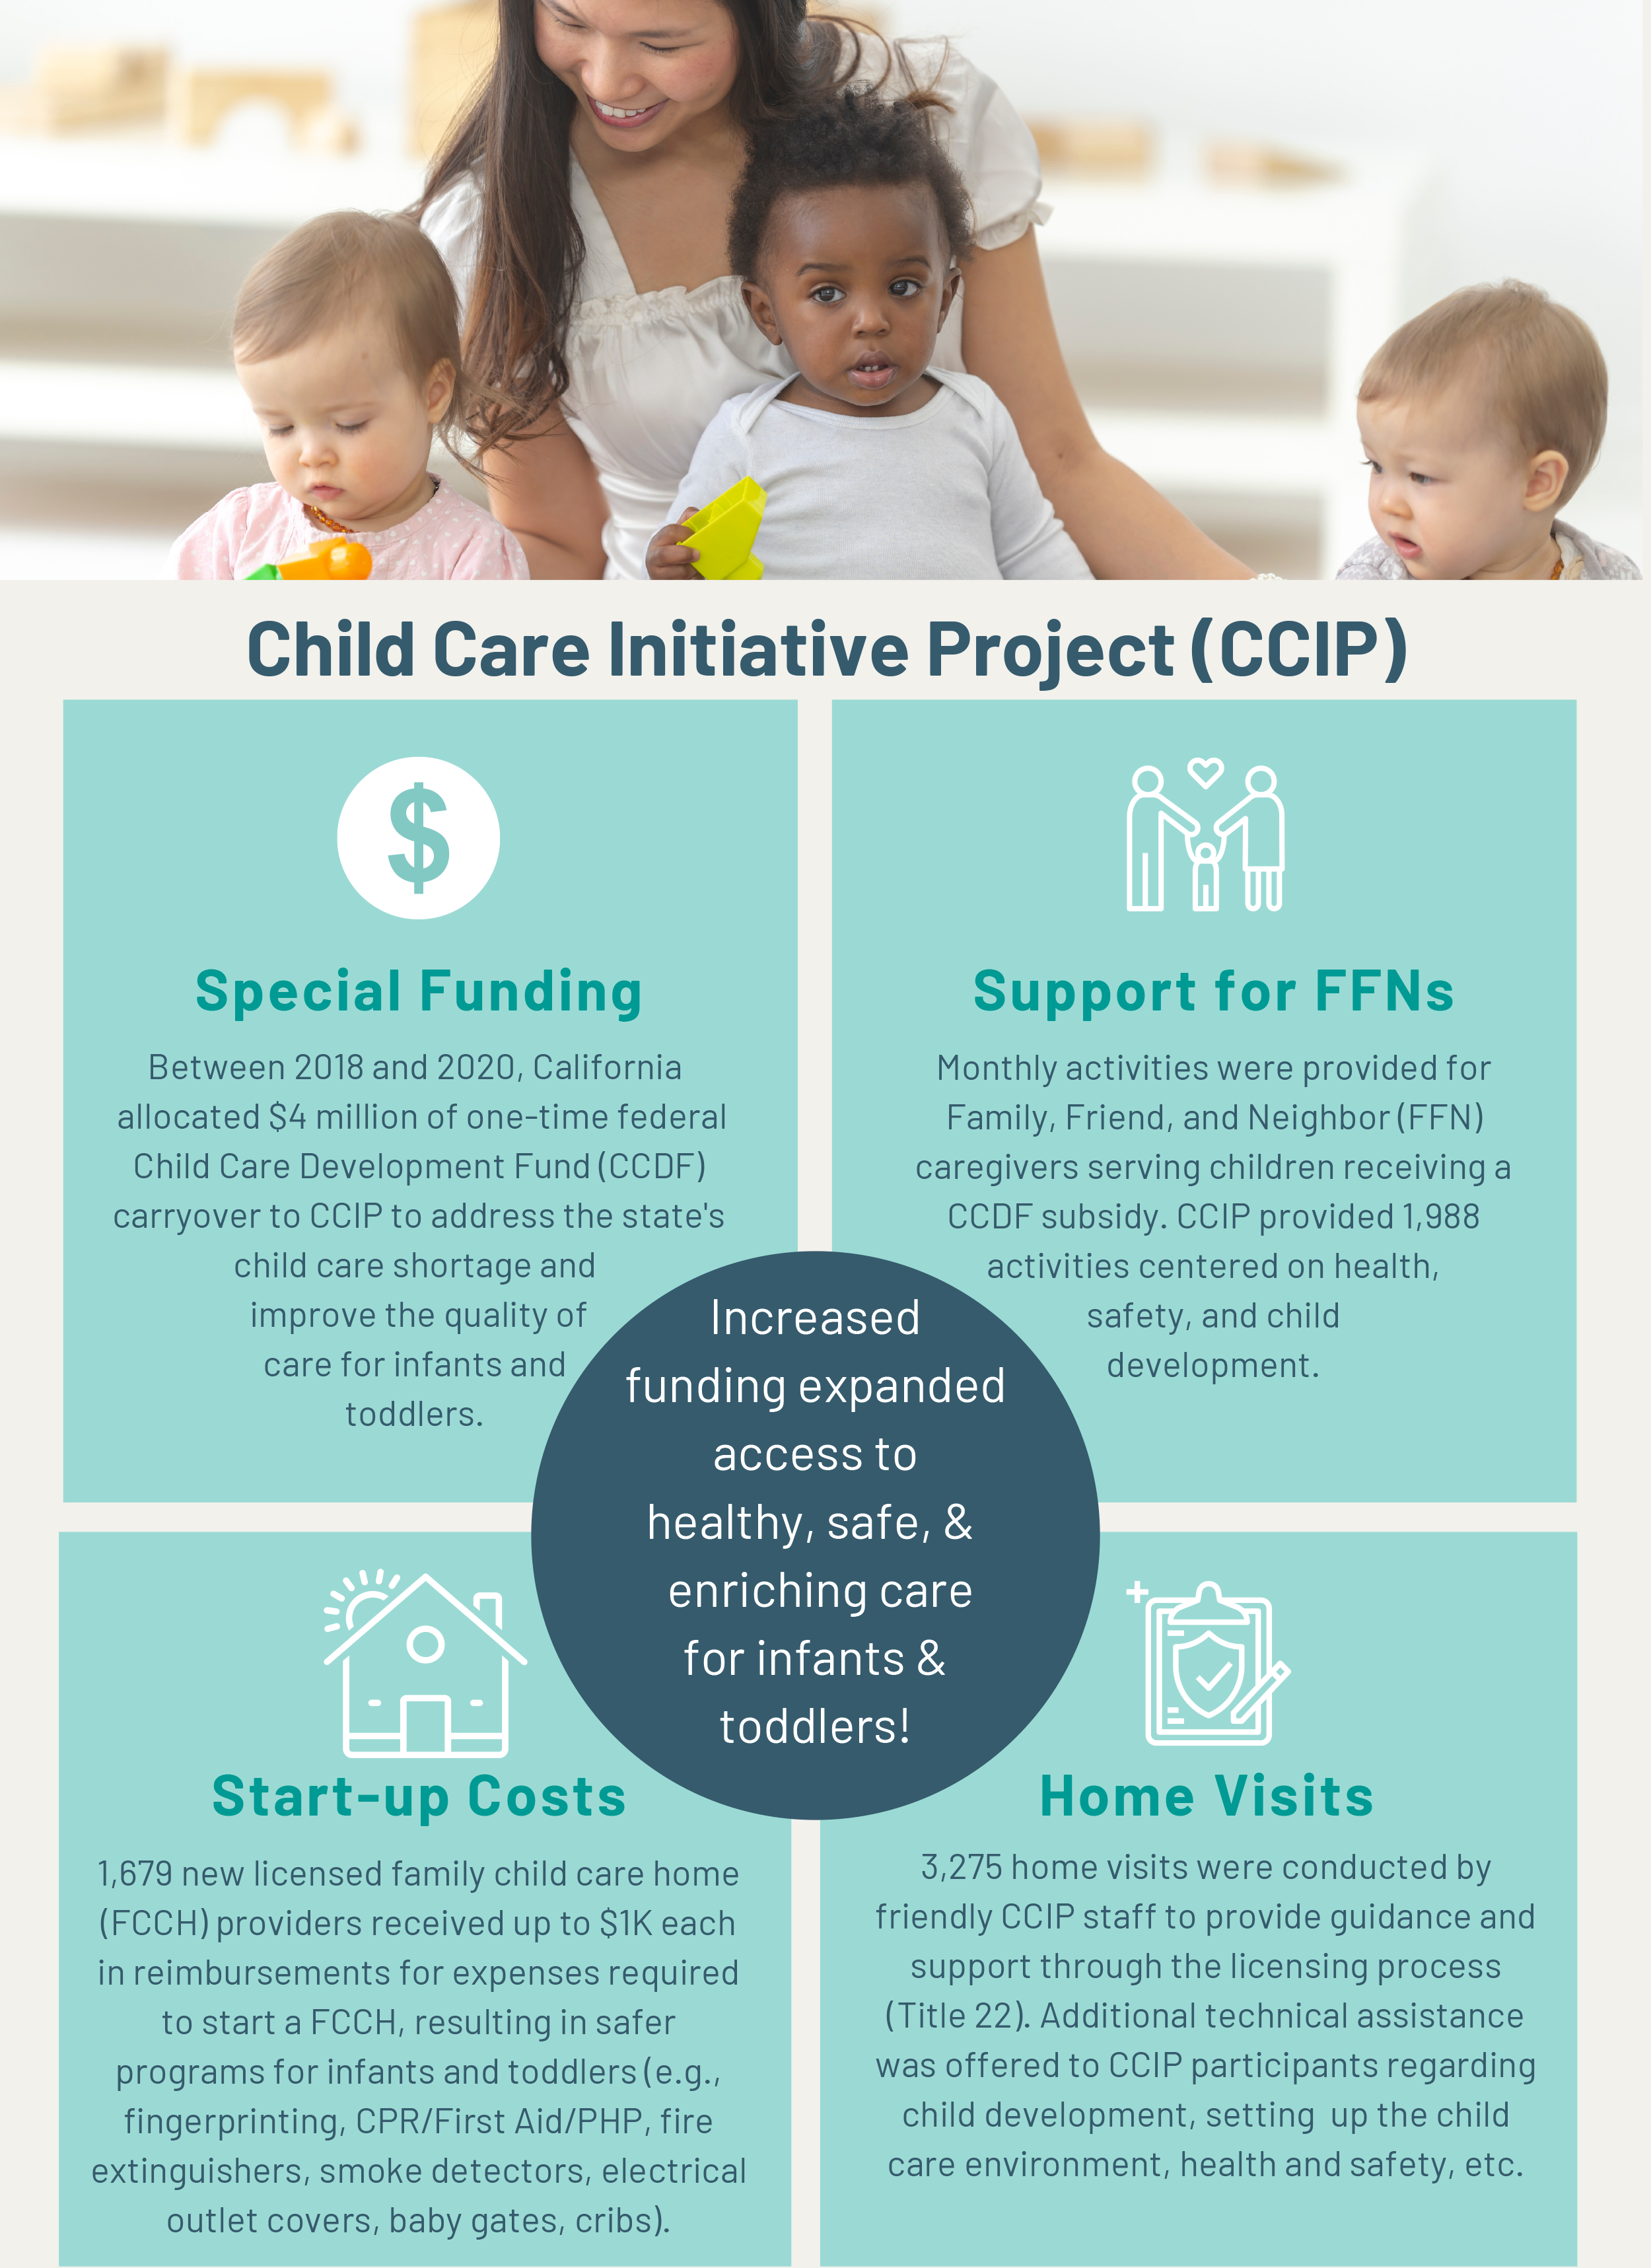 Child Care Initiative Project Infographic | Increased funding expanded access to healthy, safe, & enriching care for infants & toddlers!